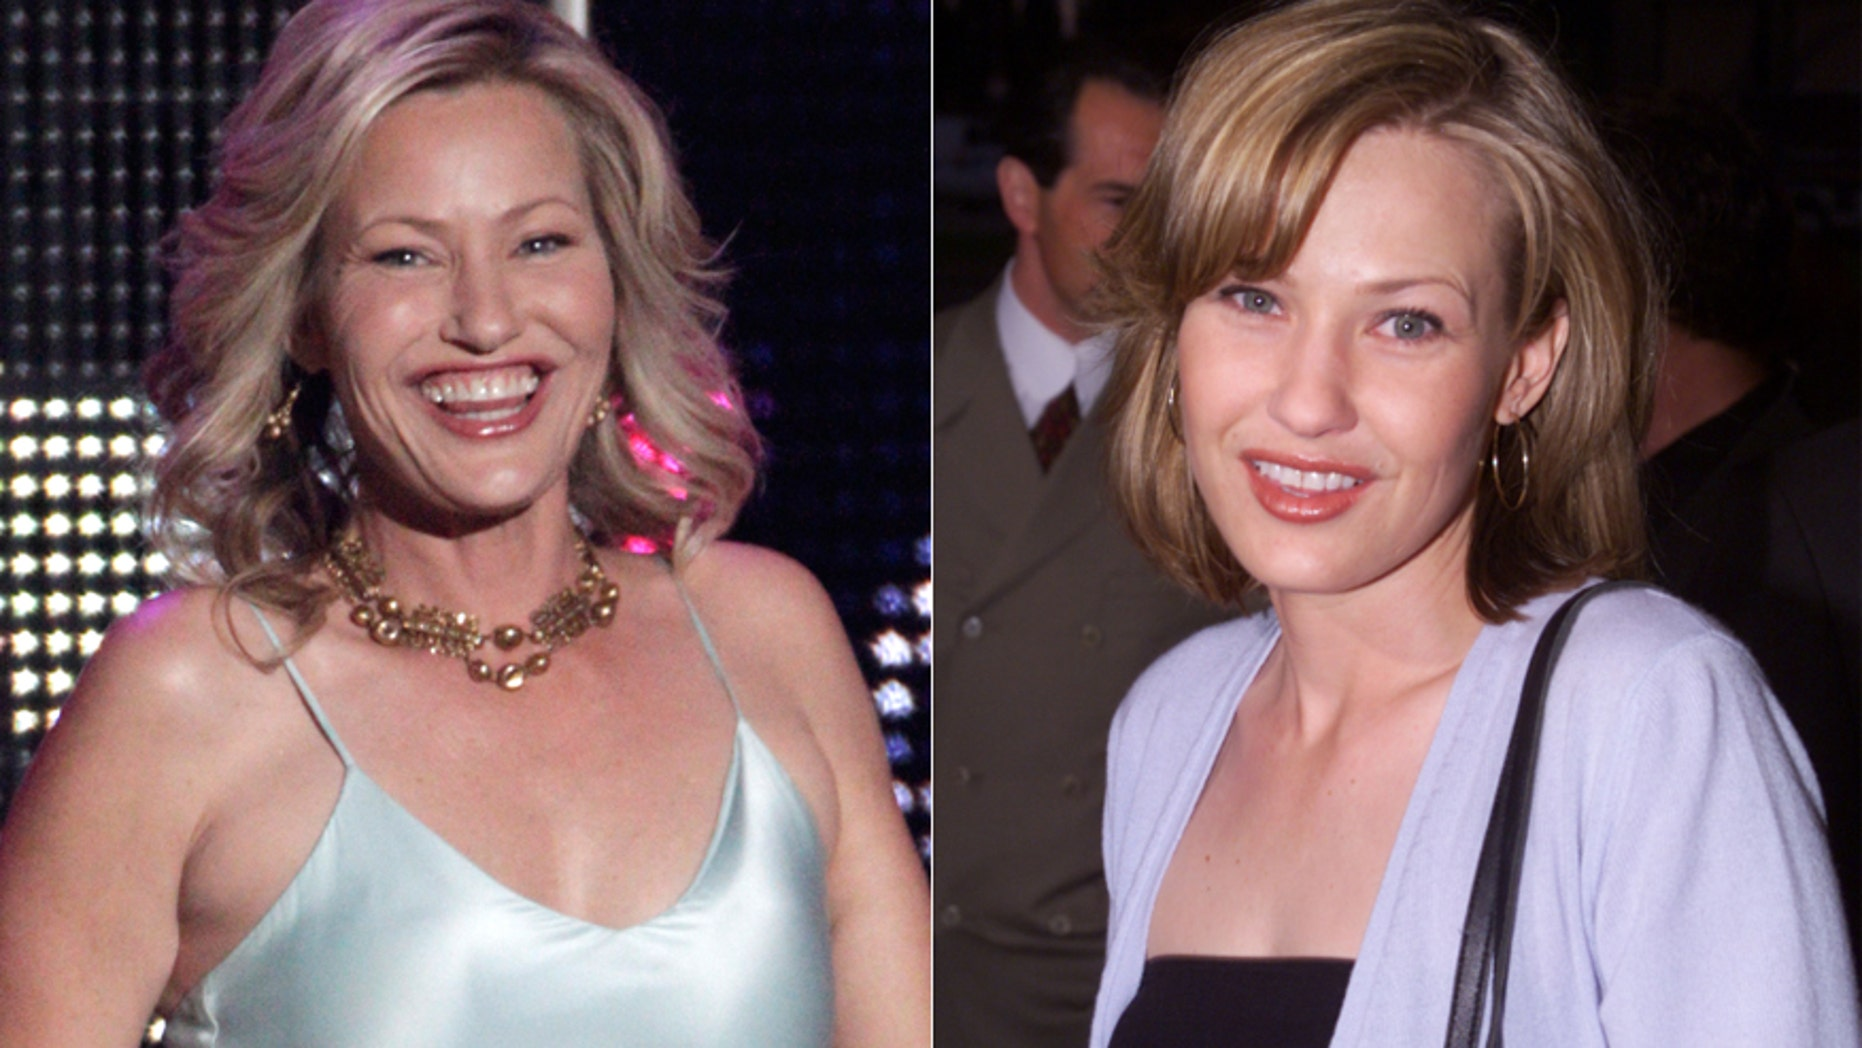 Joey Lauren Adams at the CMT Awards Wednesday, left, and in 2000.